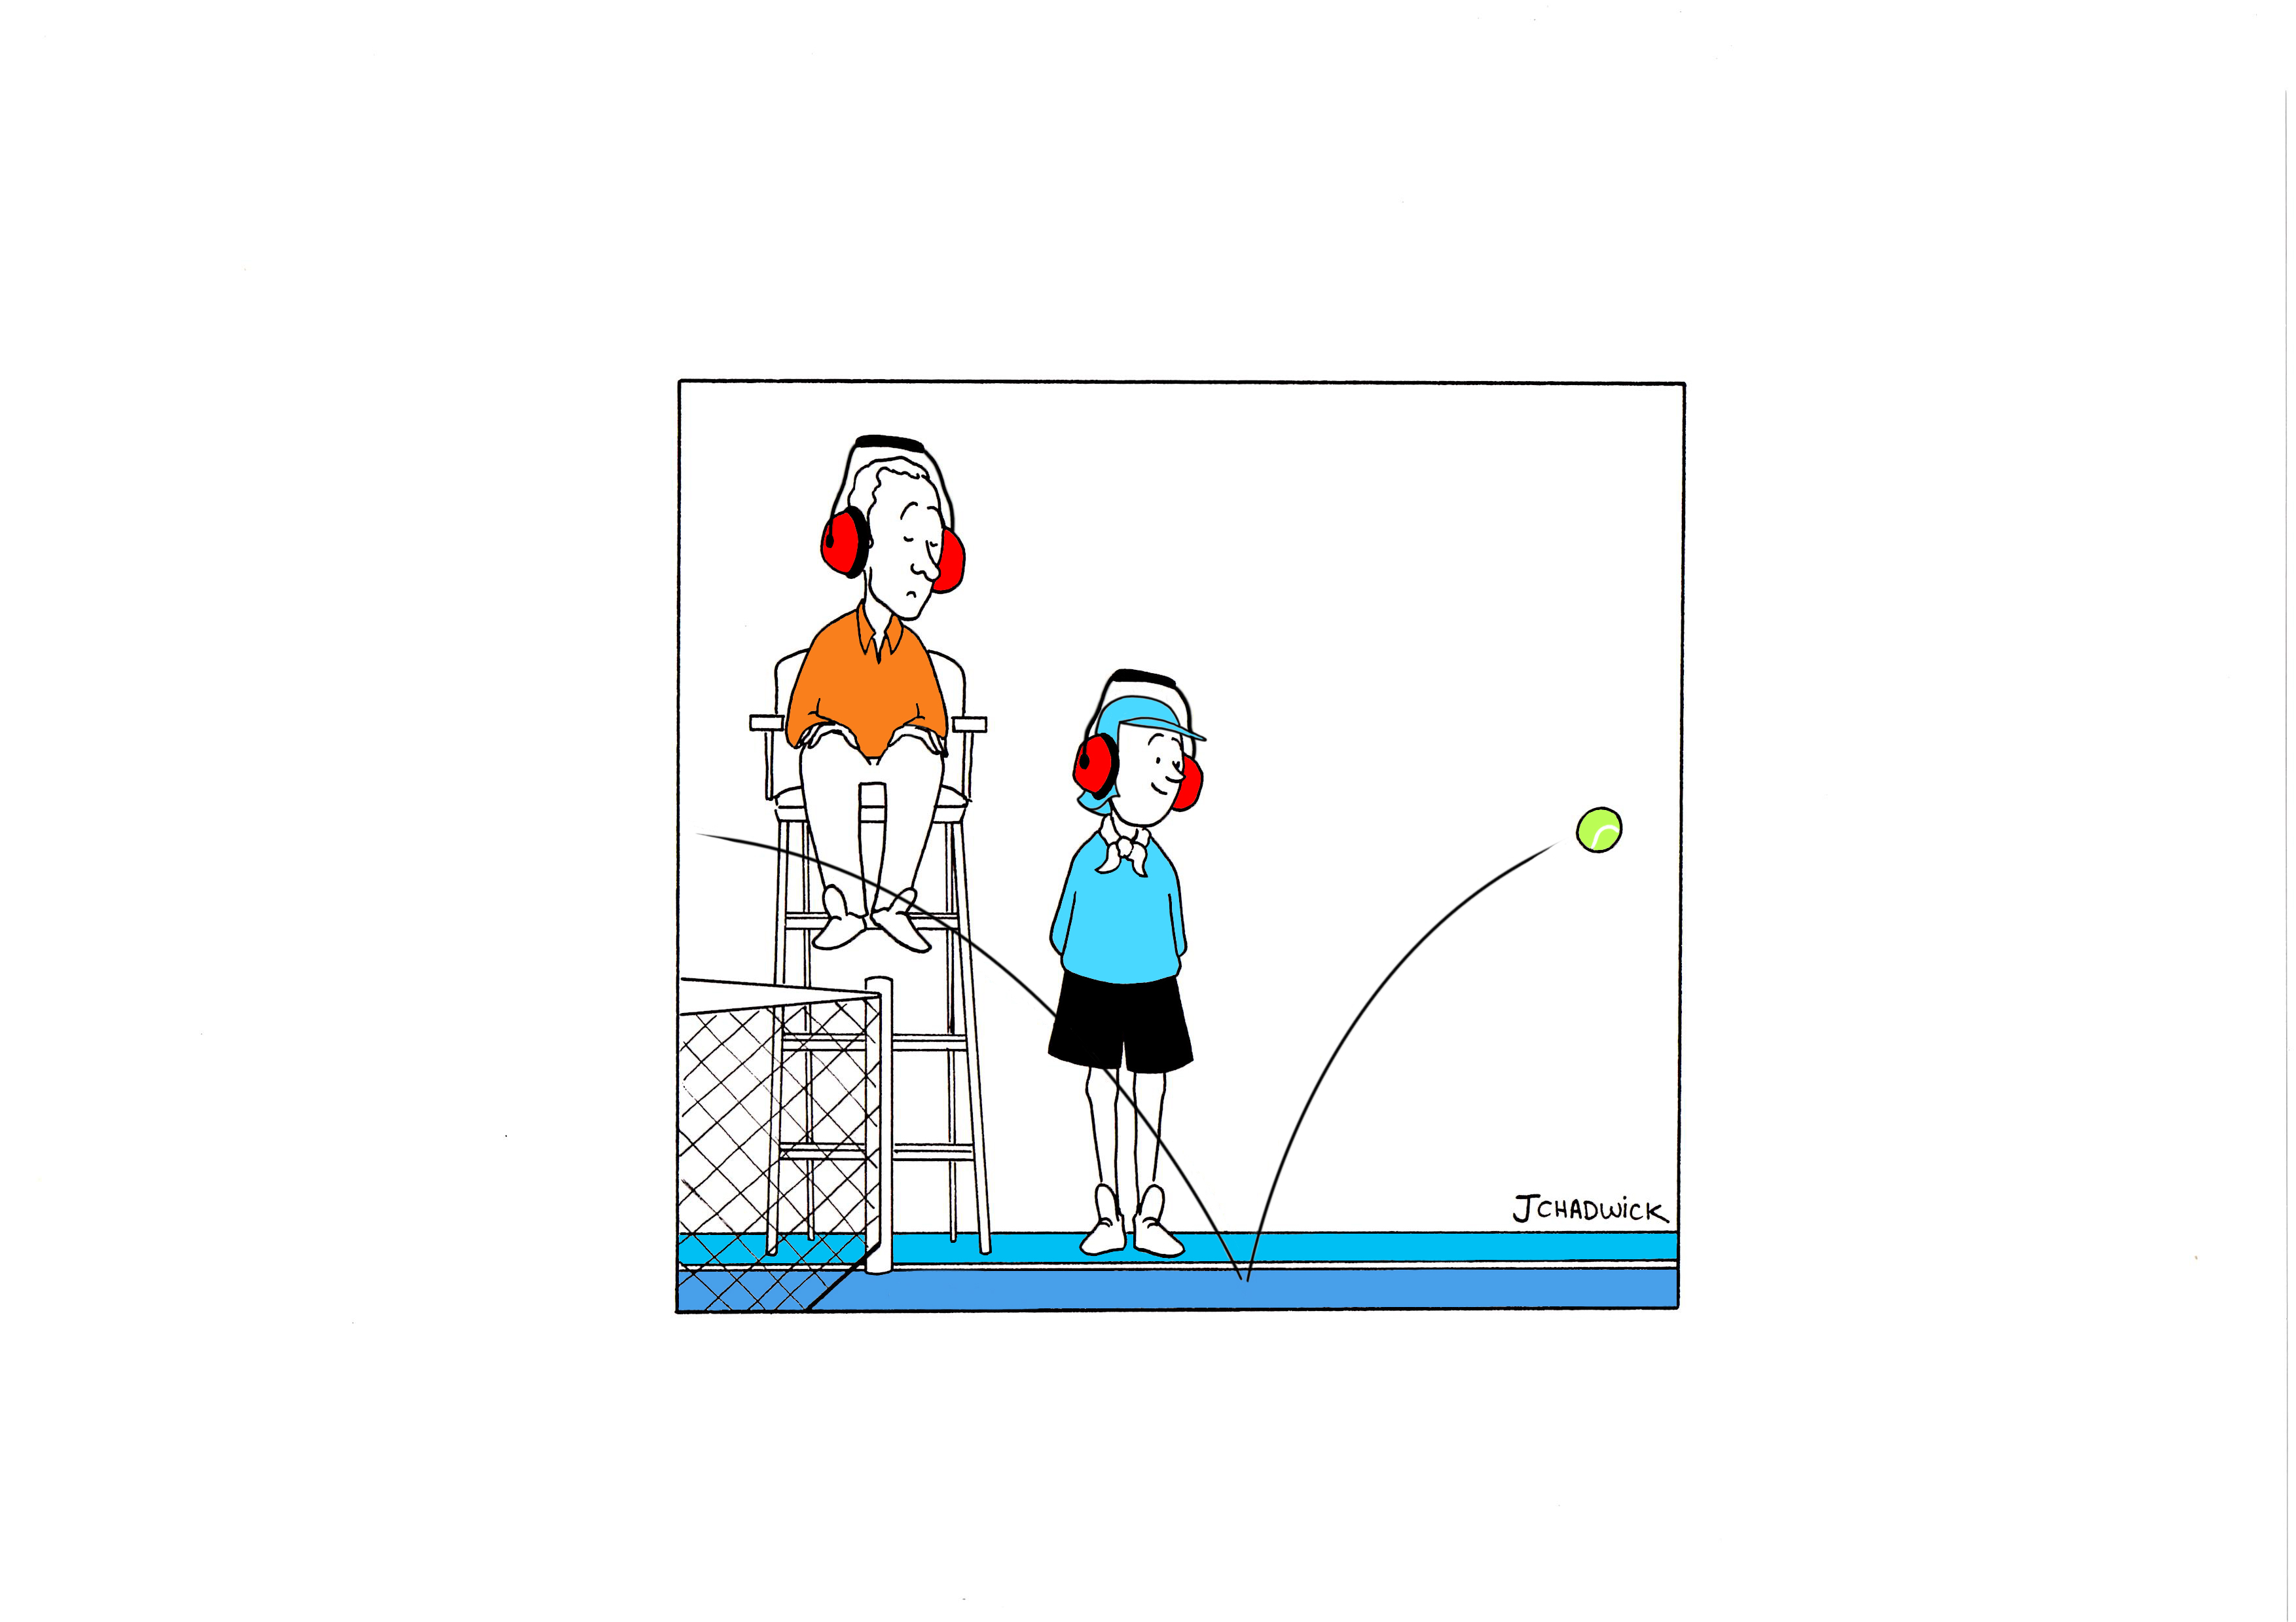 tennis umpire clipart #3